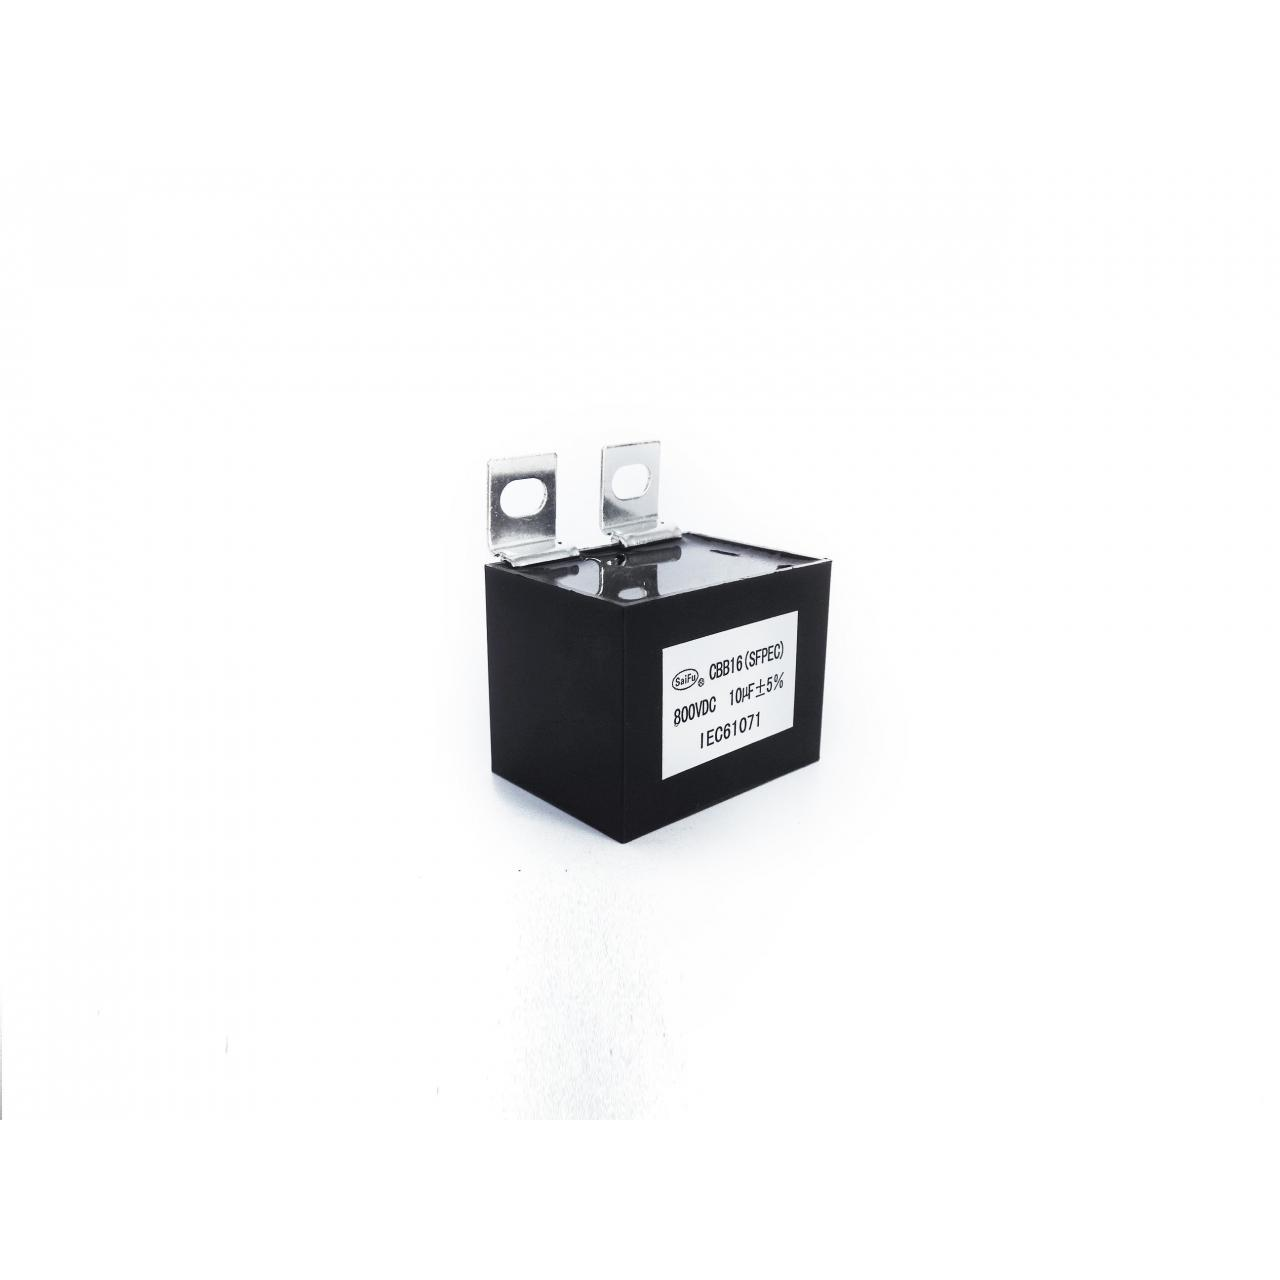 China CBB15 800VDC 20uF Industrial Capacitors wholesale